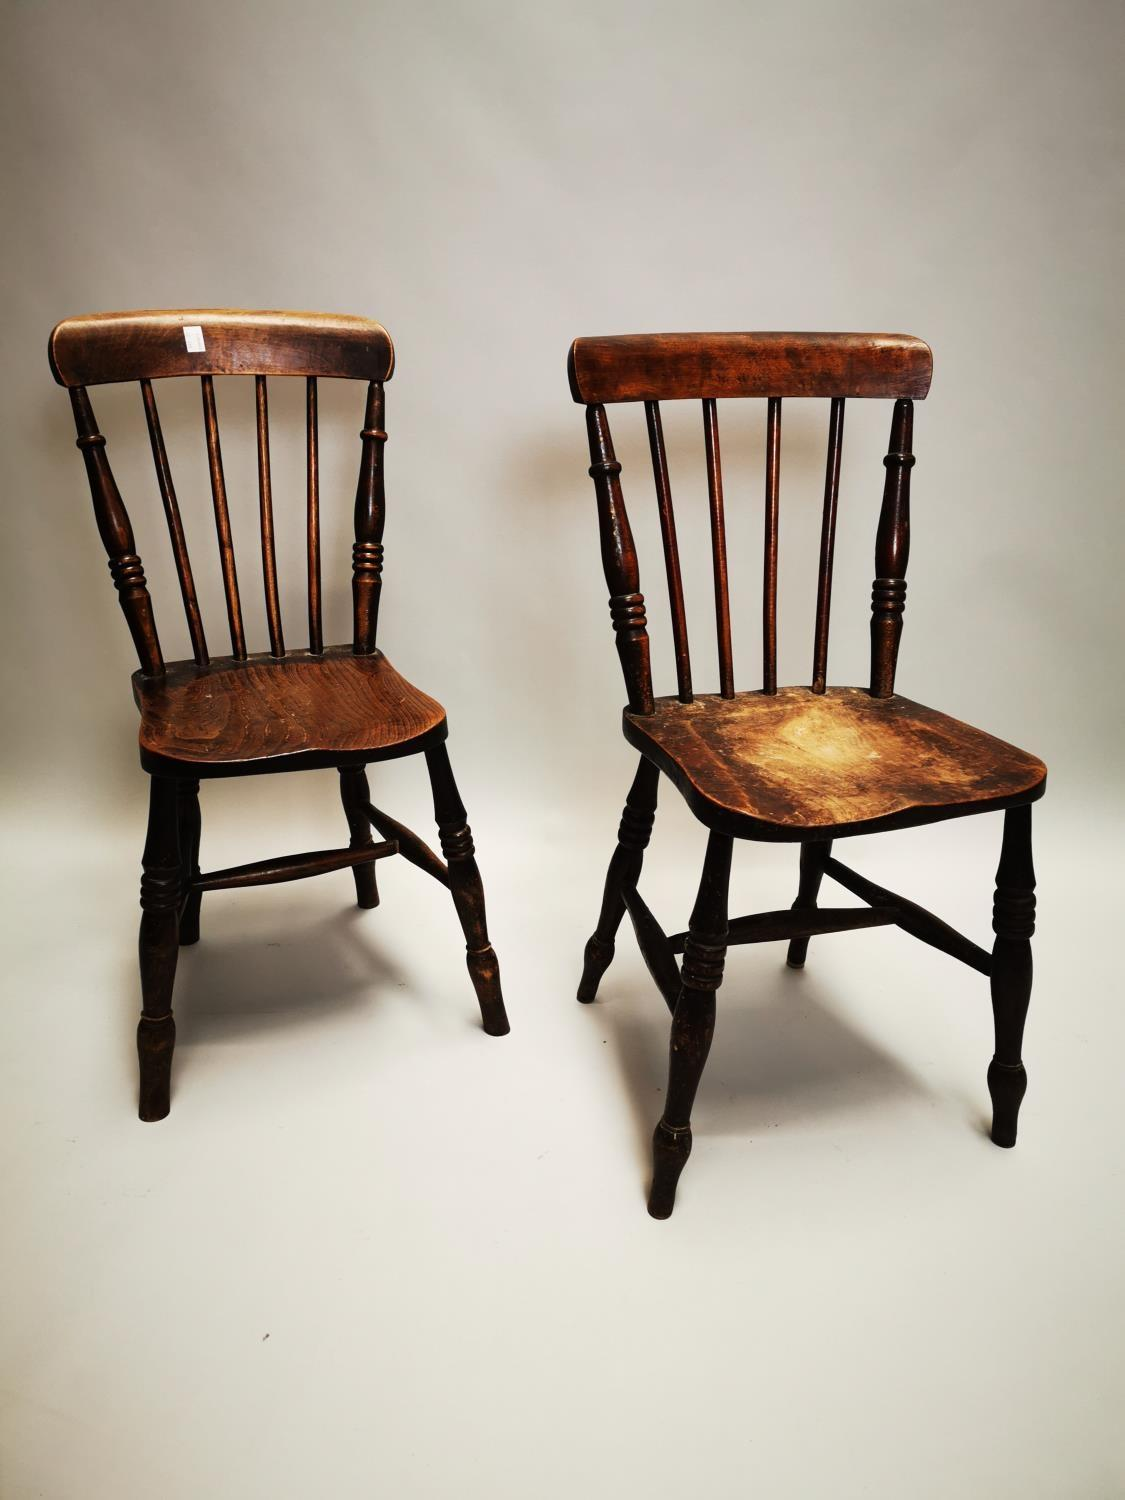 Pair of 19th C. pine and elm kitchen chairs